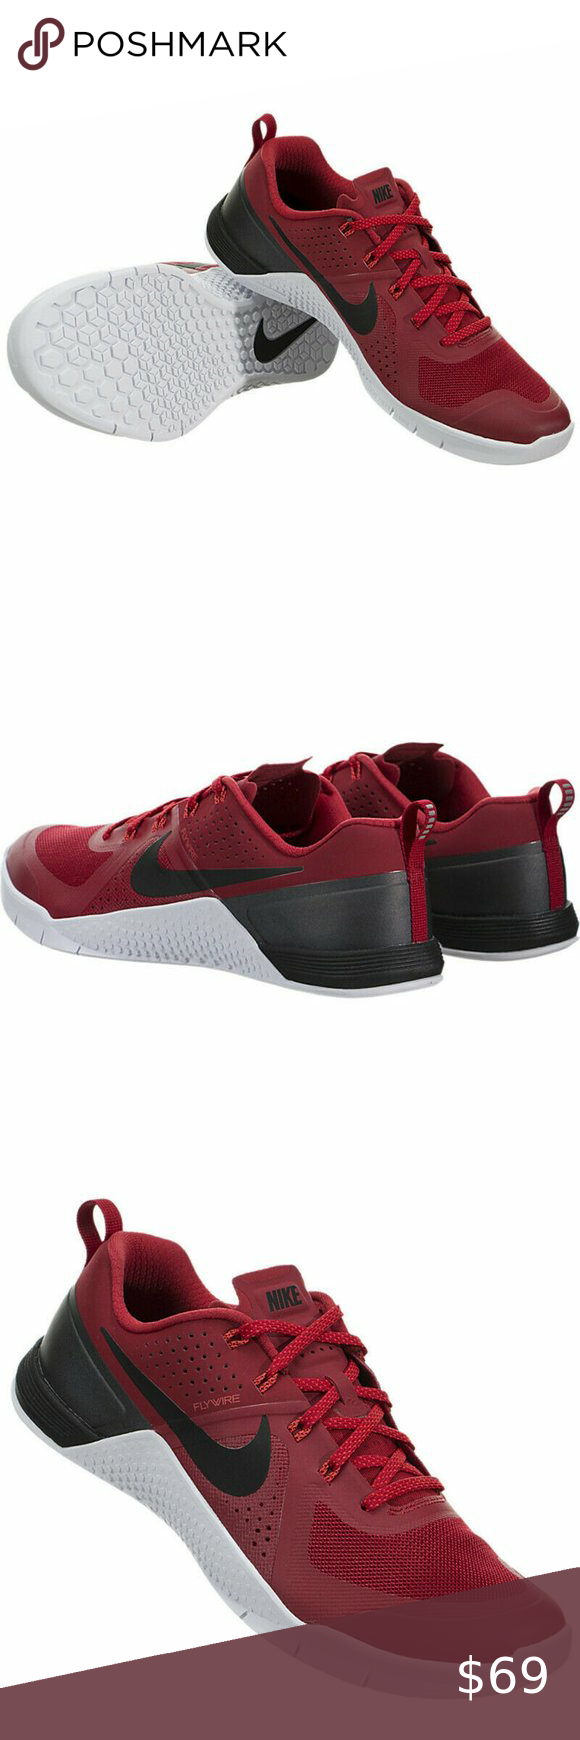 New Men's Nike Metcon 1 Size 14 Gym Red